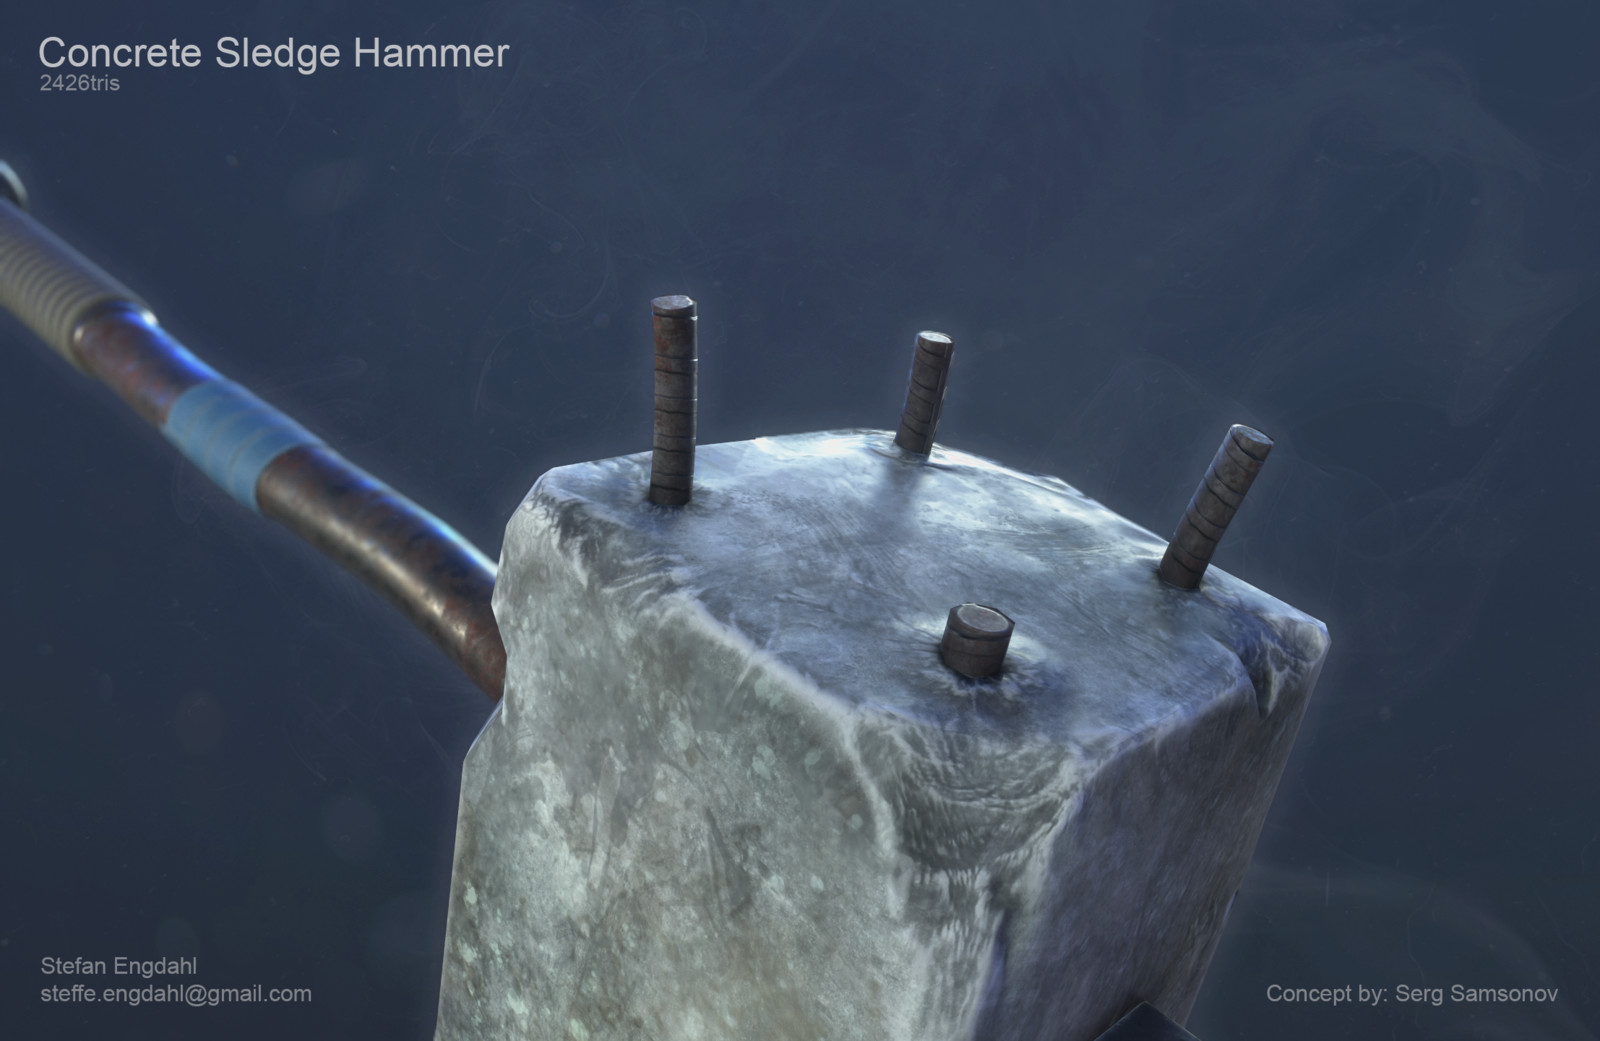 Concrete Sledge Hammer